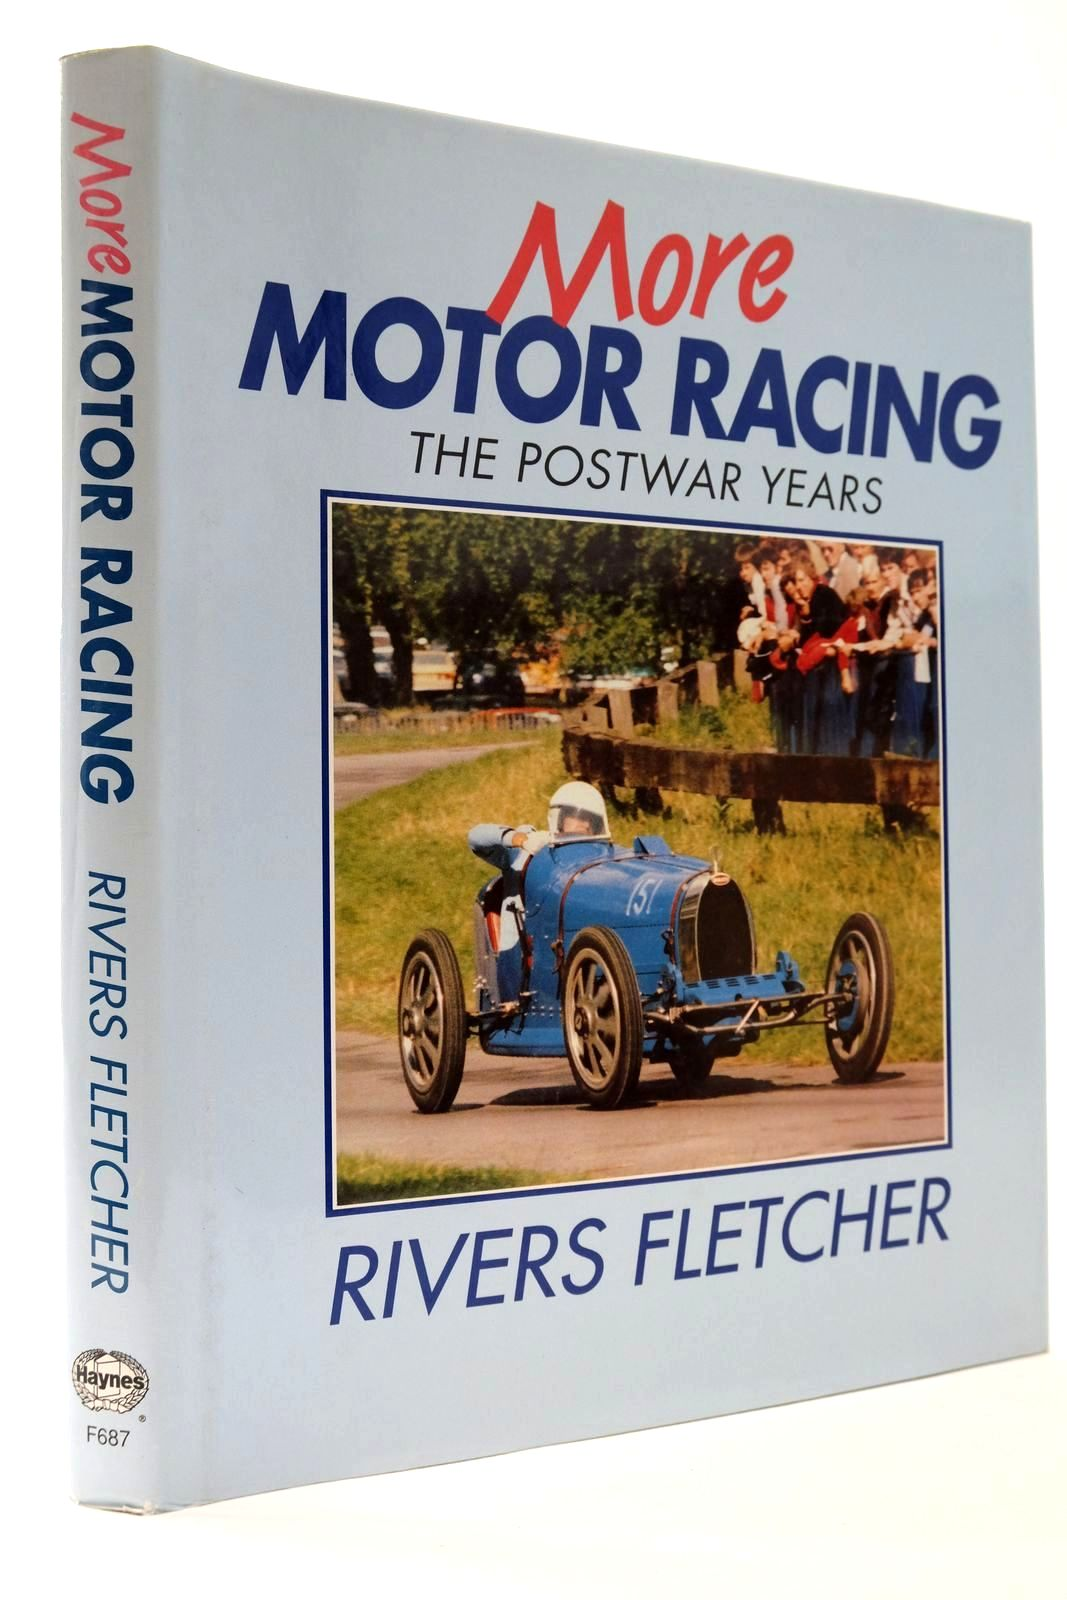 Photo of MORE MOTOR RACING THE POSTWAR YEARS written by Fletcher, Rivers published by Haynes Publishing Group (STOCK CODE: 2133459)  for sale by Stella & Rose's Books